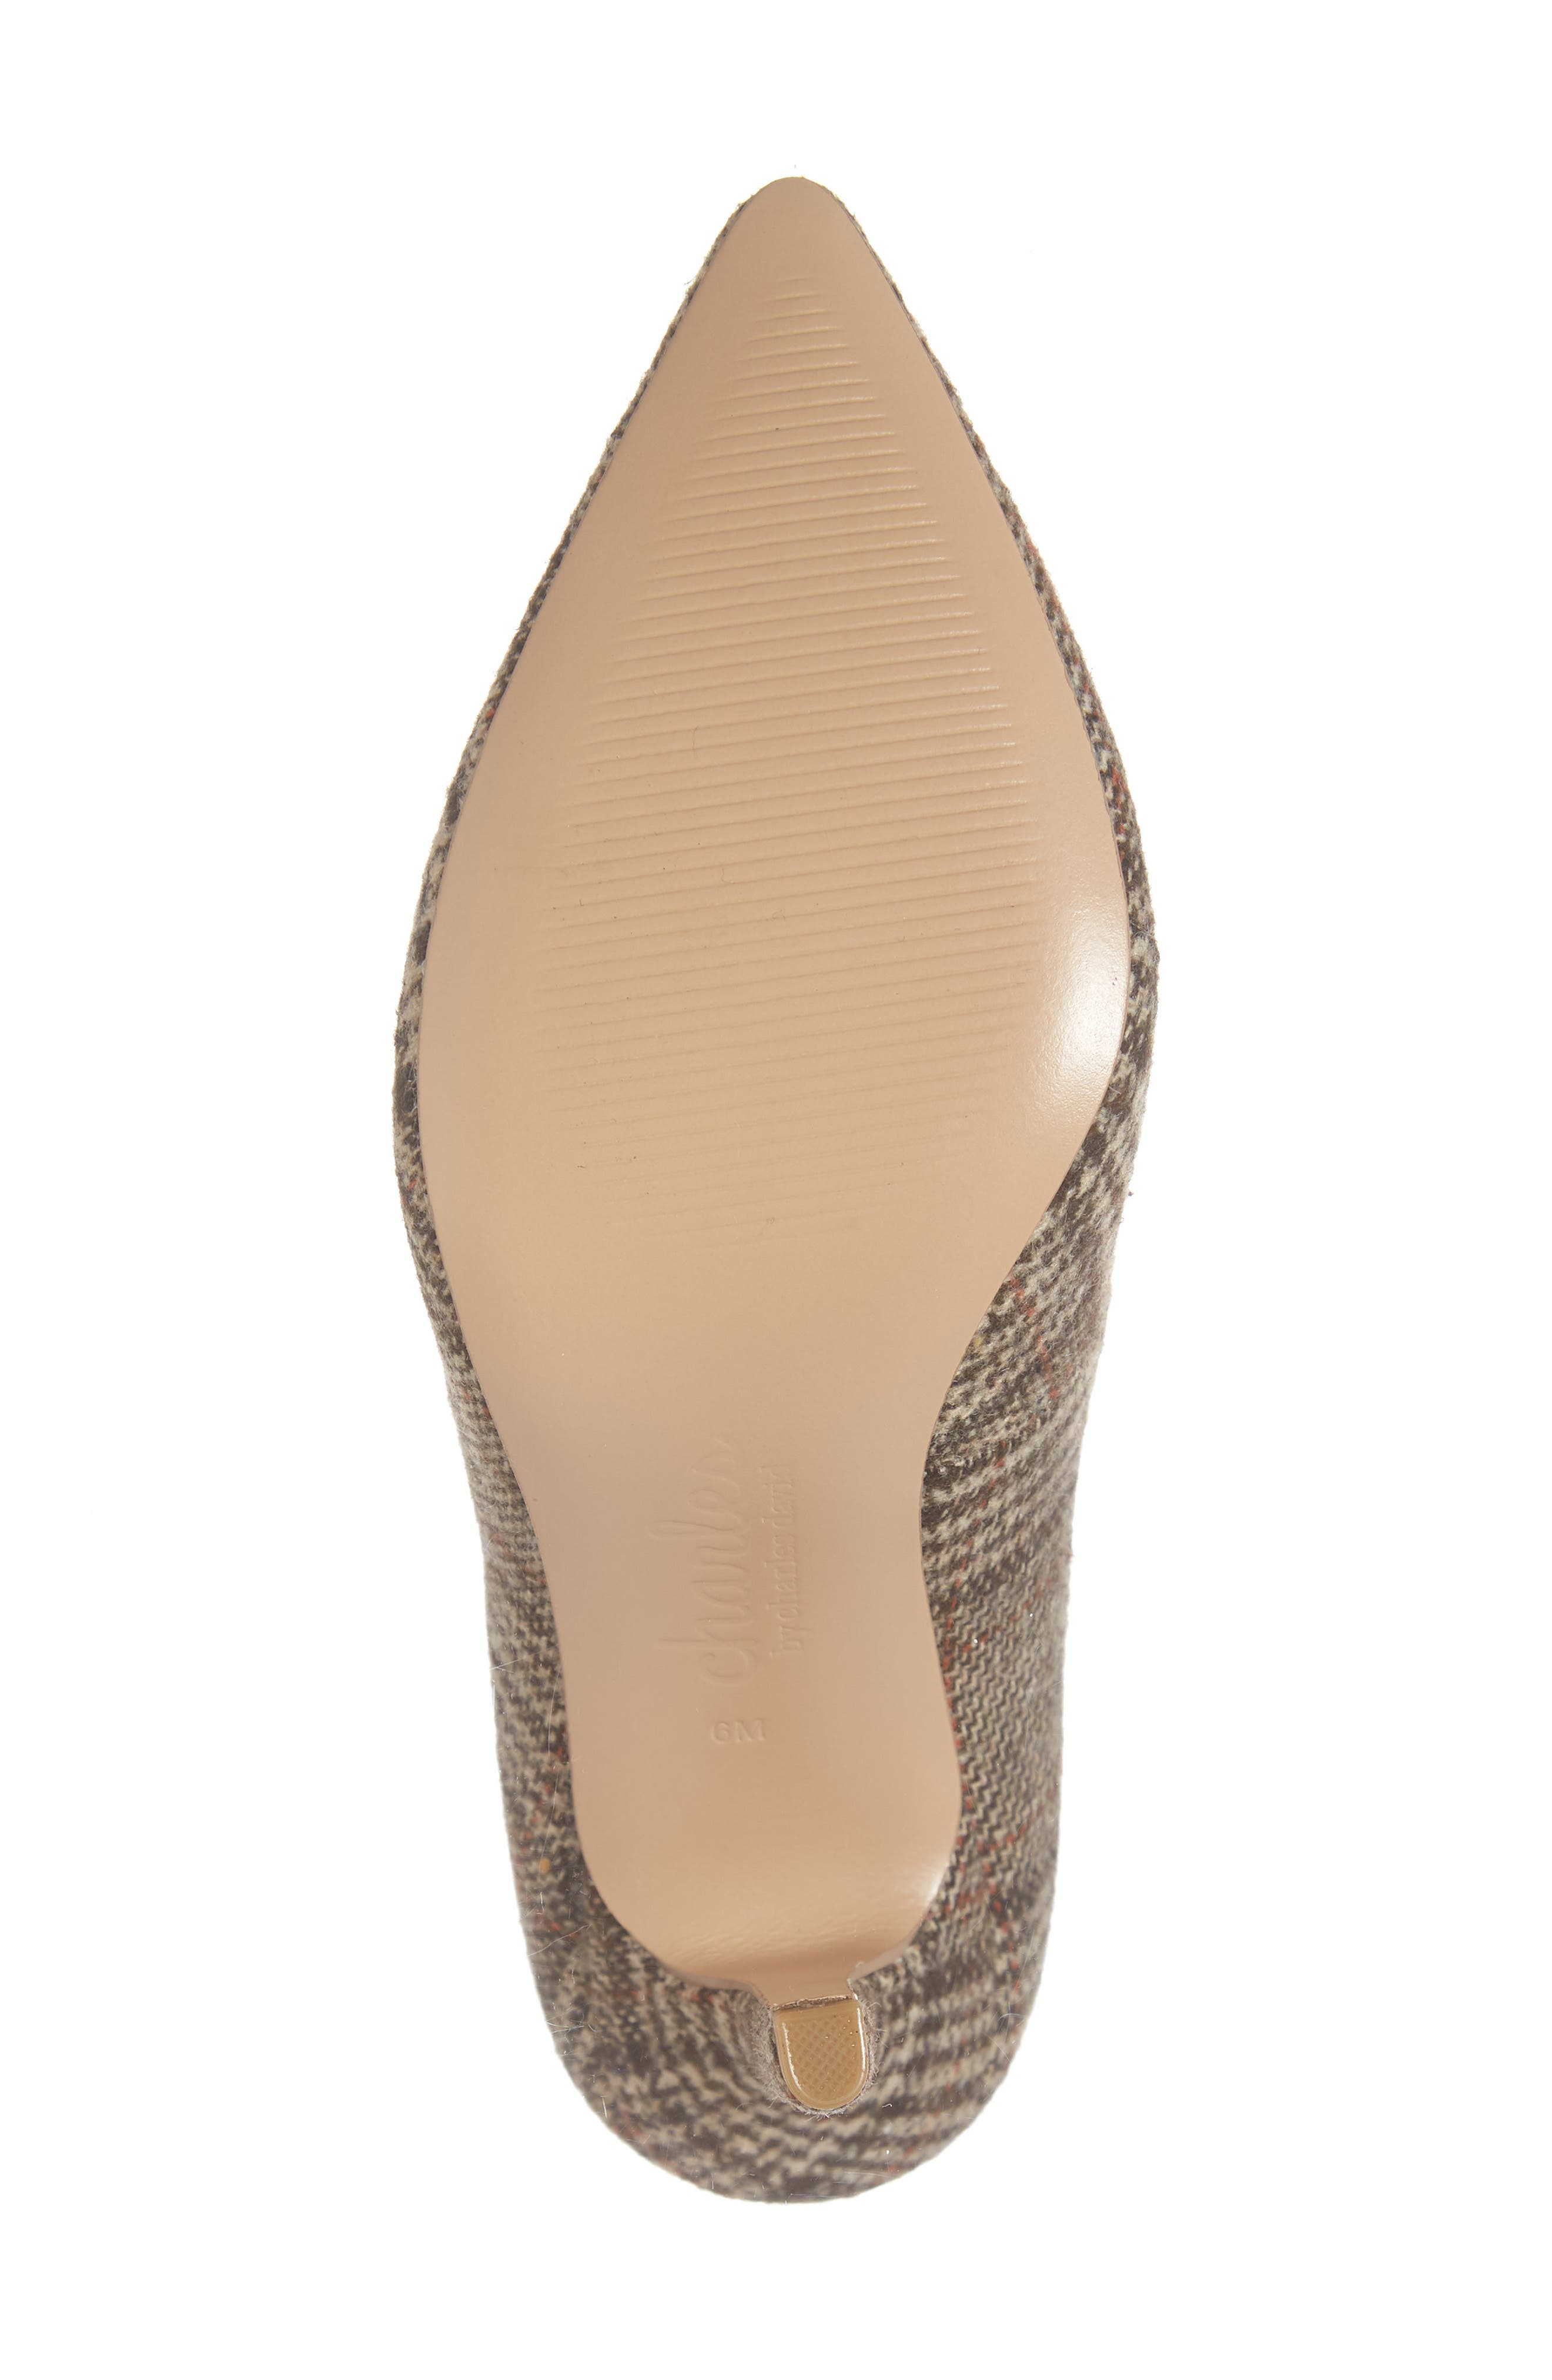 Maxx Pointy Toe Pump,                             Alternate thumbnail 6, color,                             BROWN PLAID FABRIC